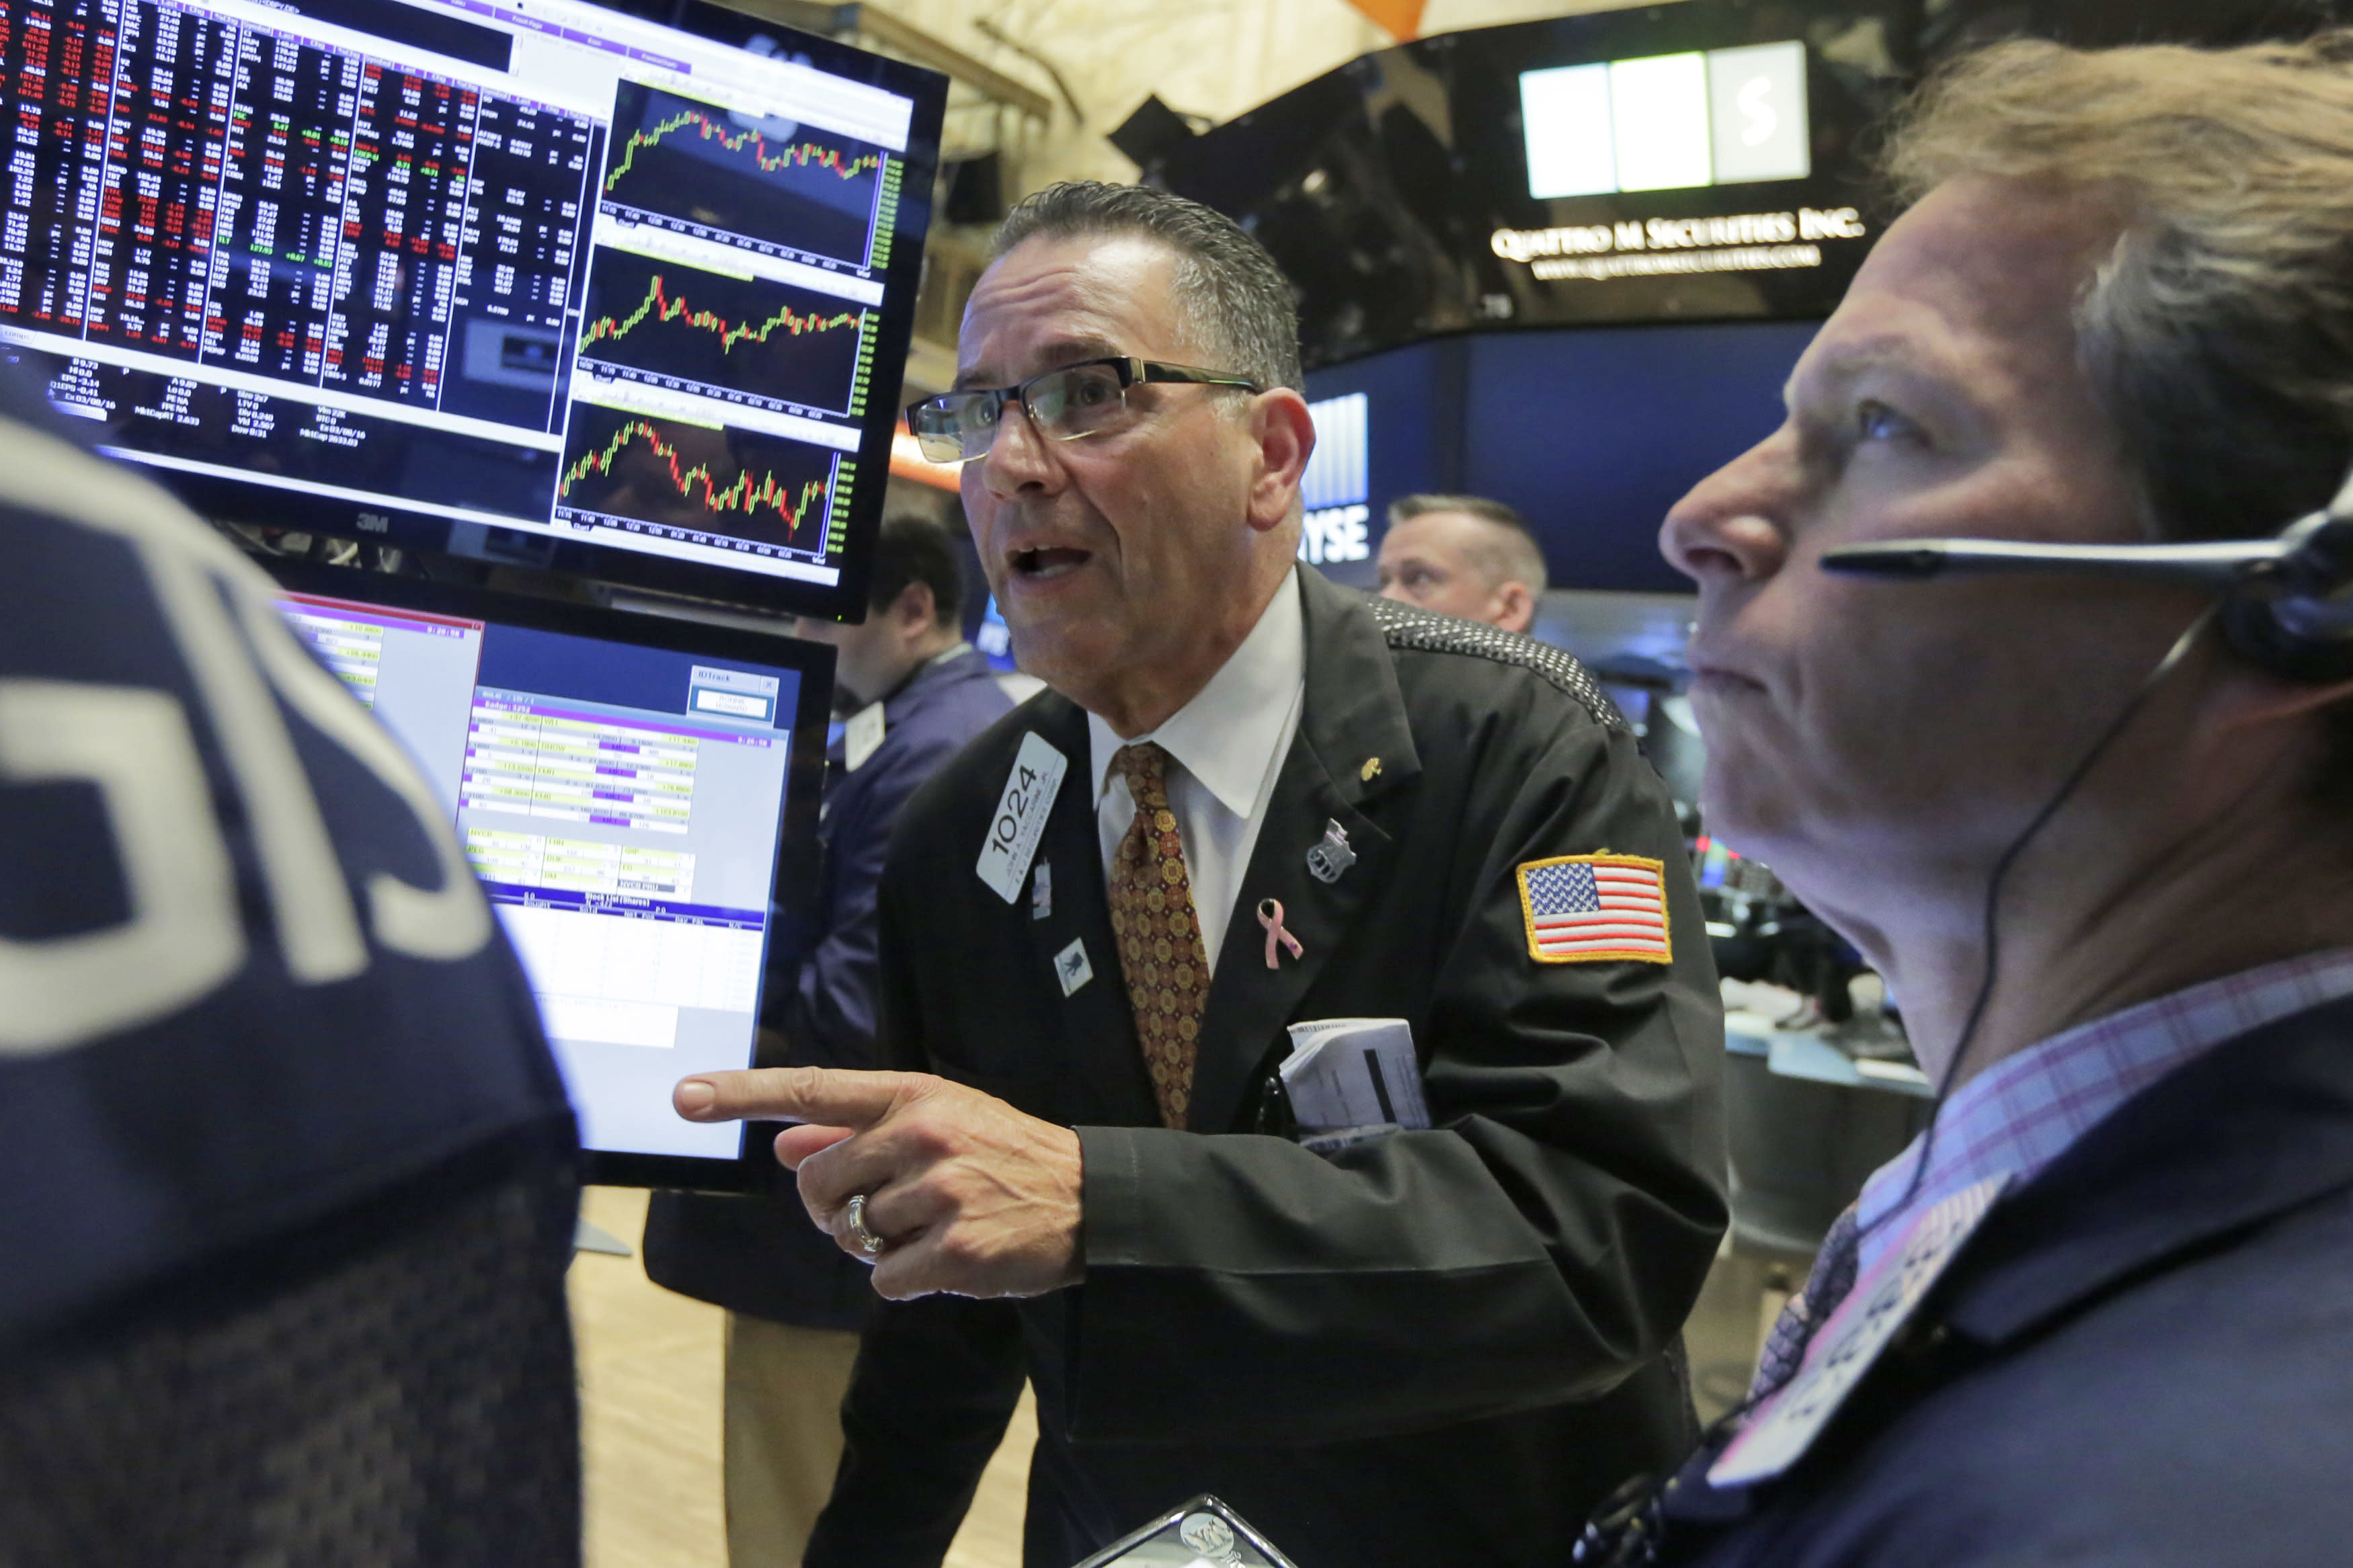 US stocks boosted by better Fed outlook; Apple dives